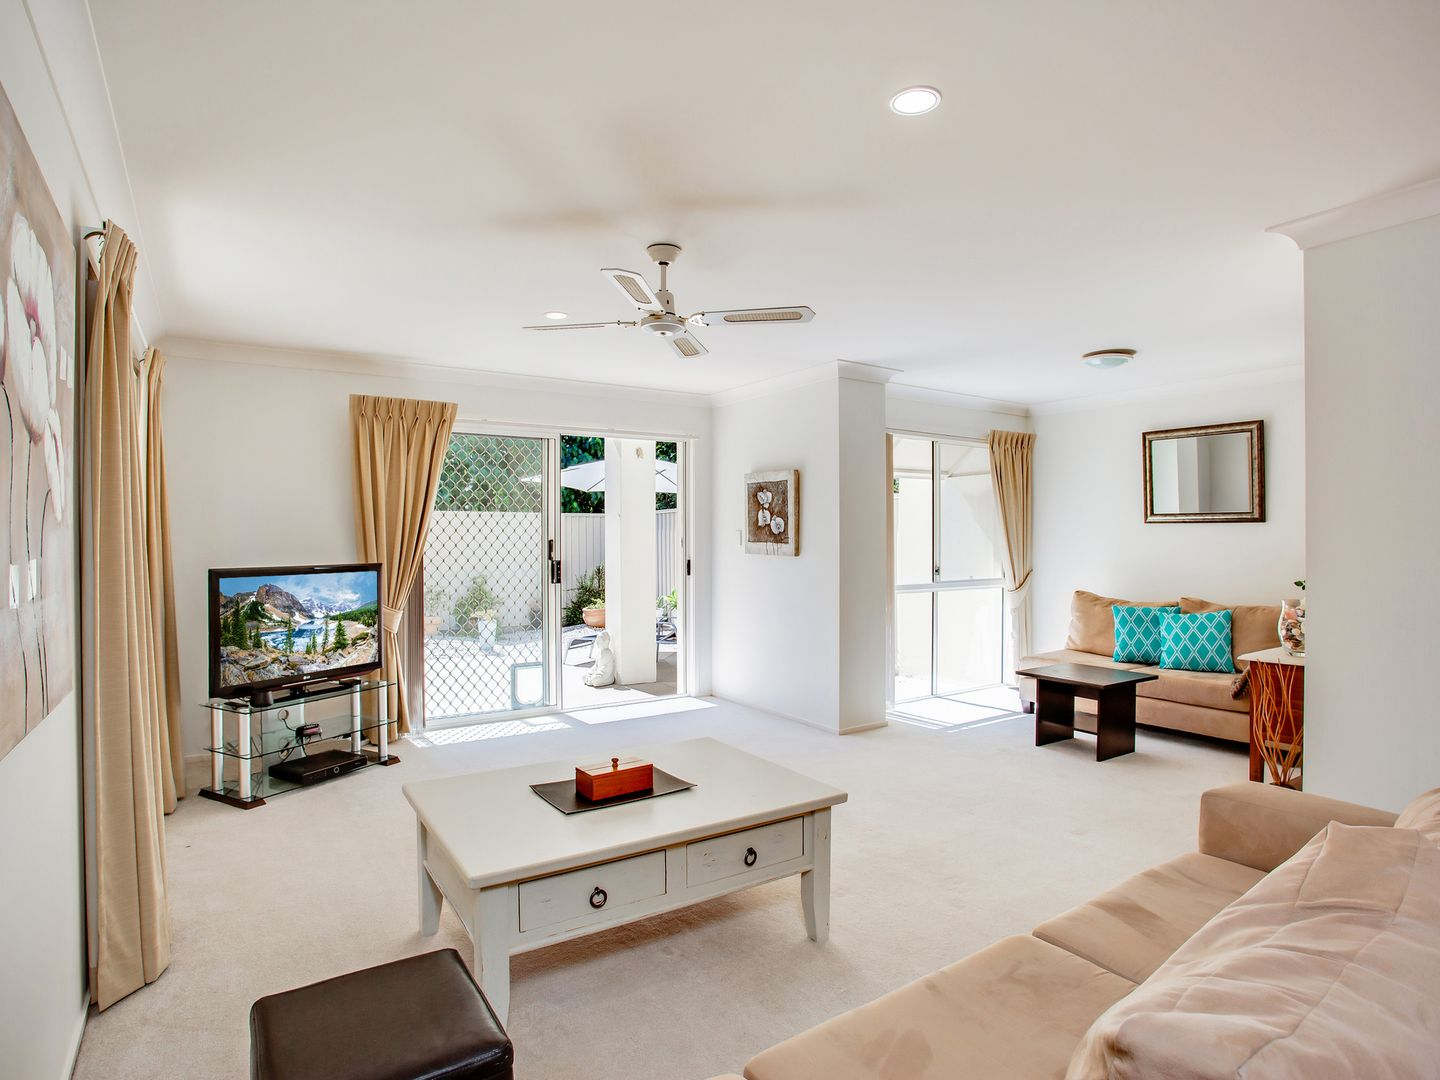 5/11 Beachcomber Court, Burleigh Waters QLD 4220 - Townhouse